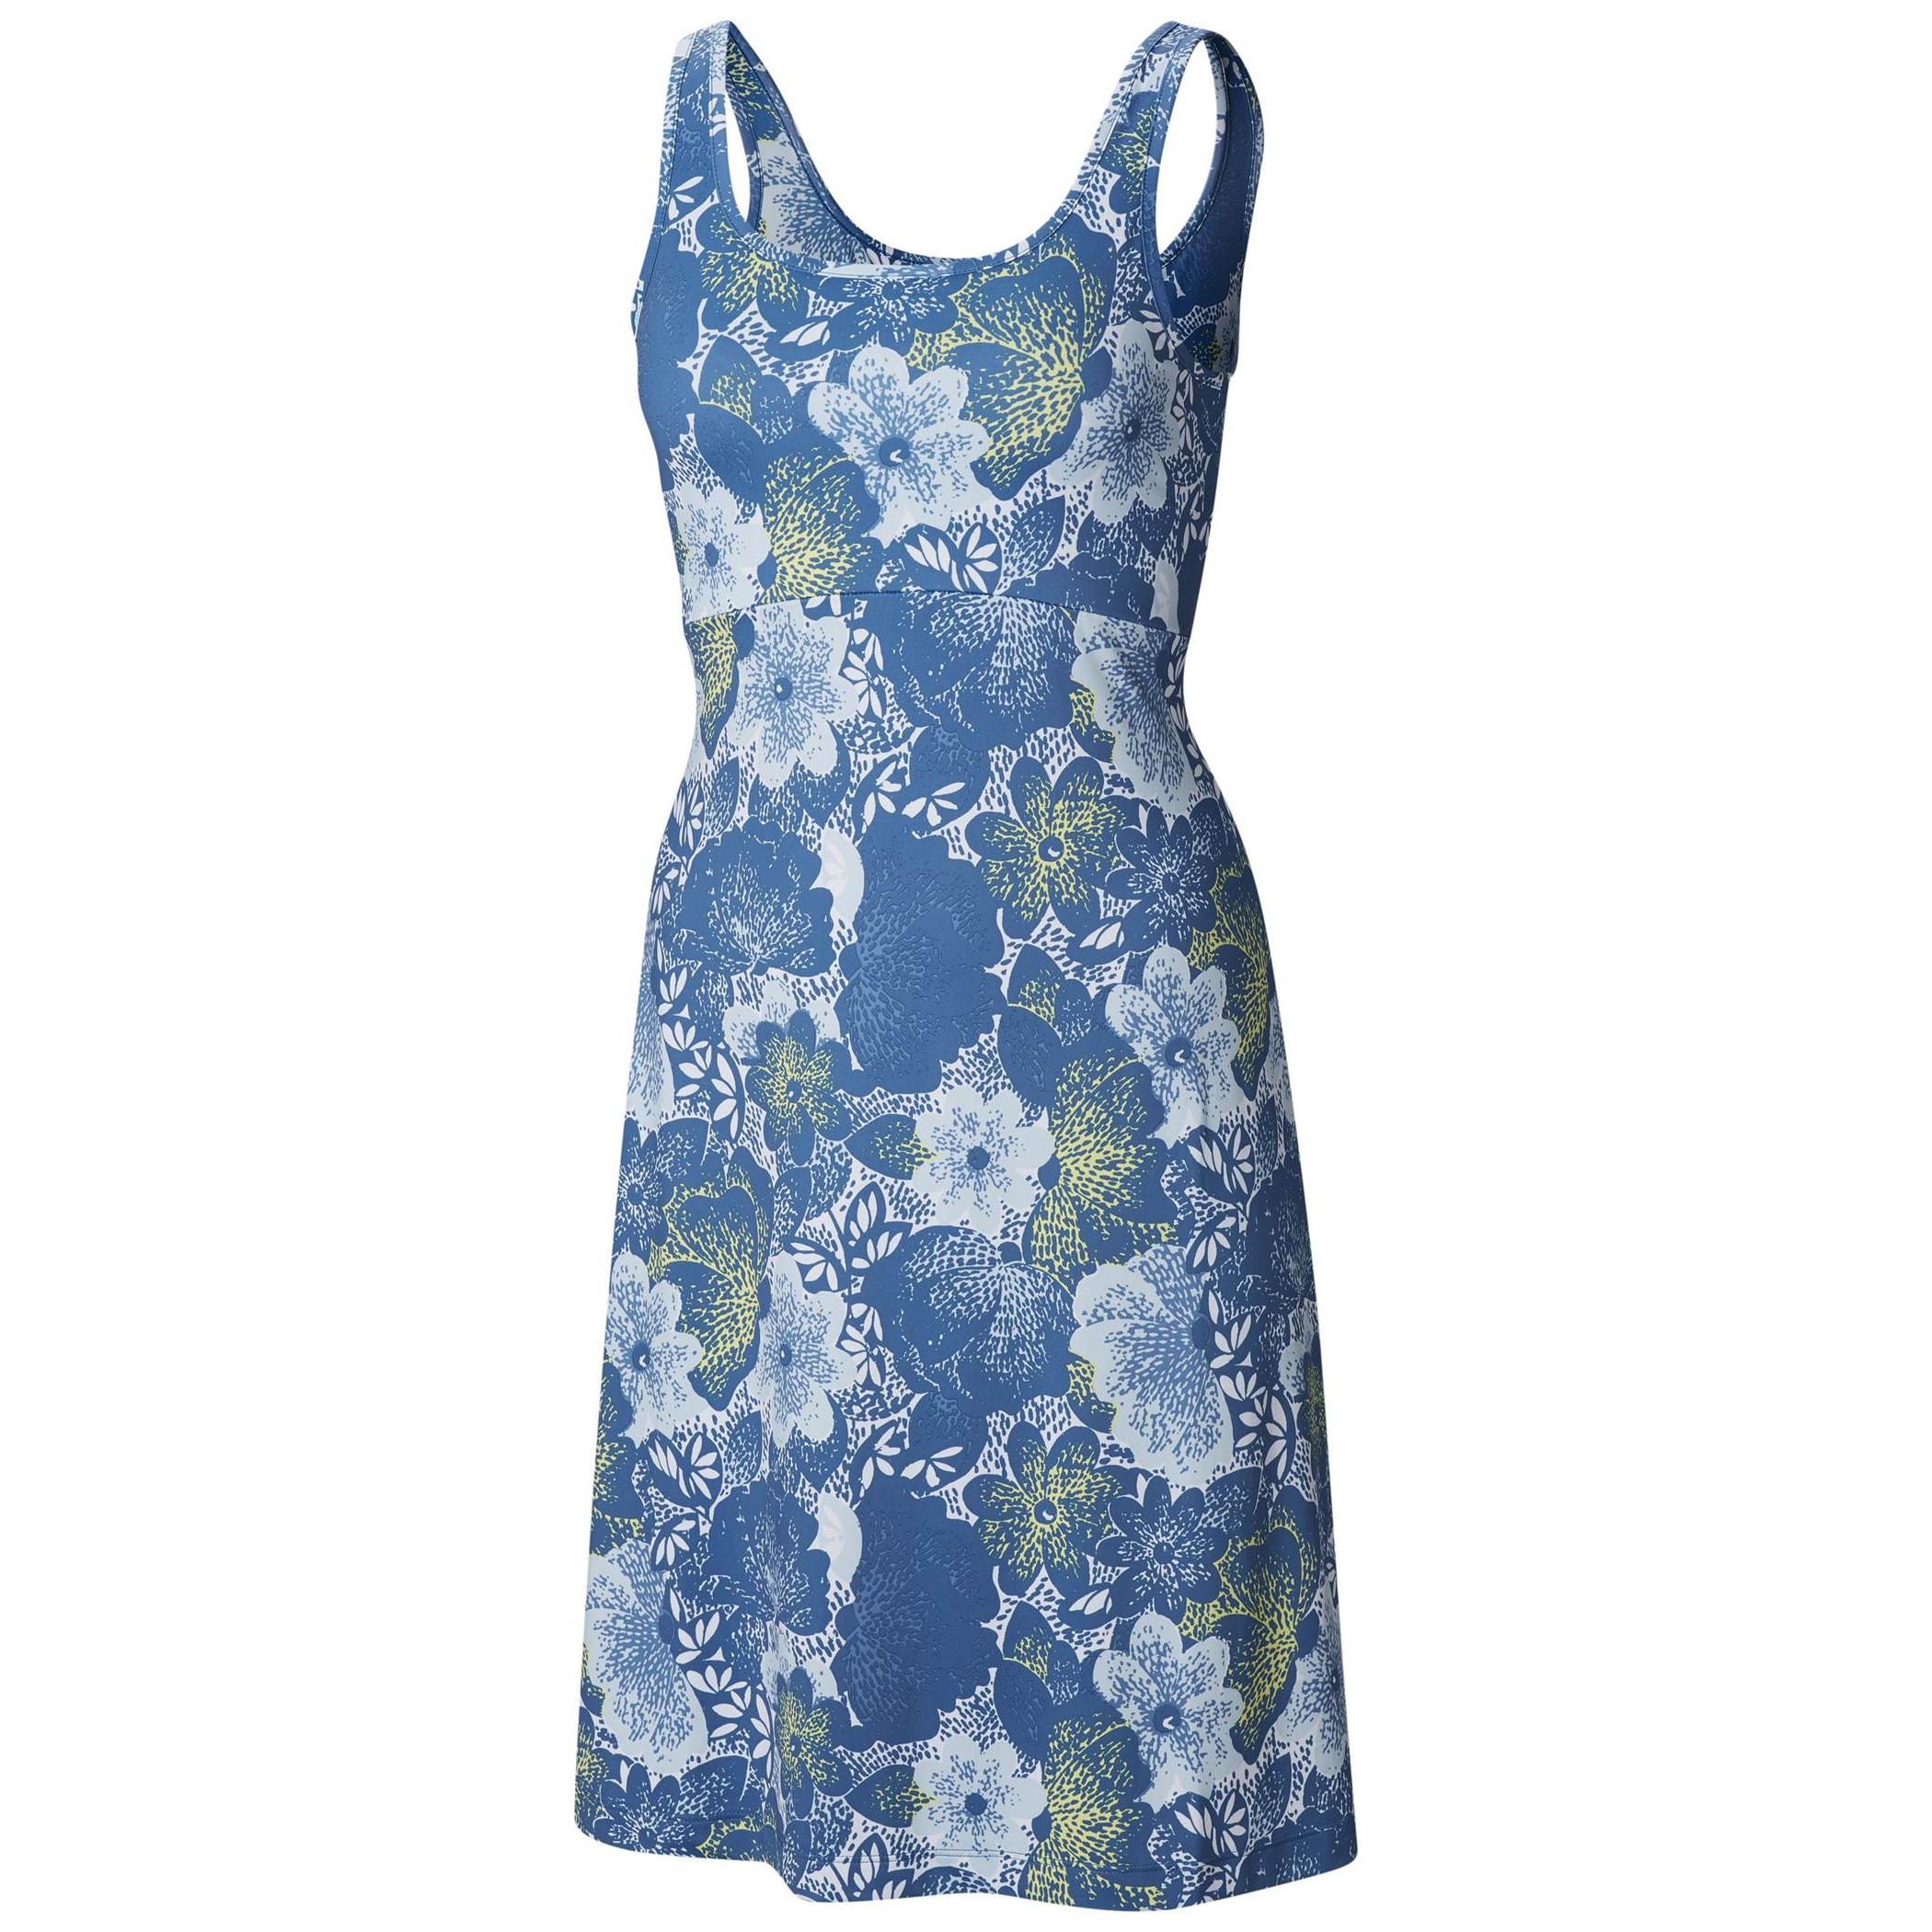 Freezer III Dress - Women's